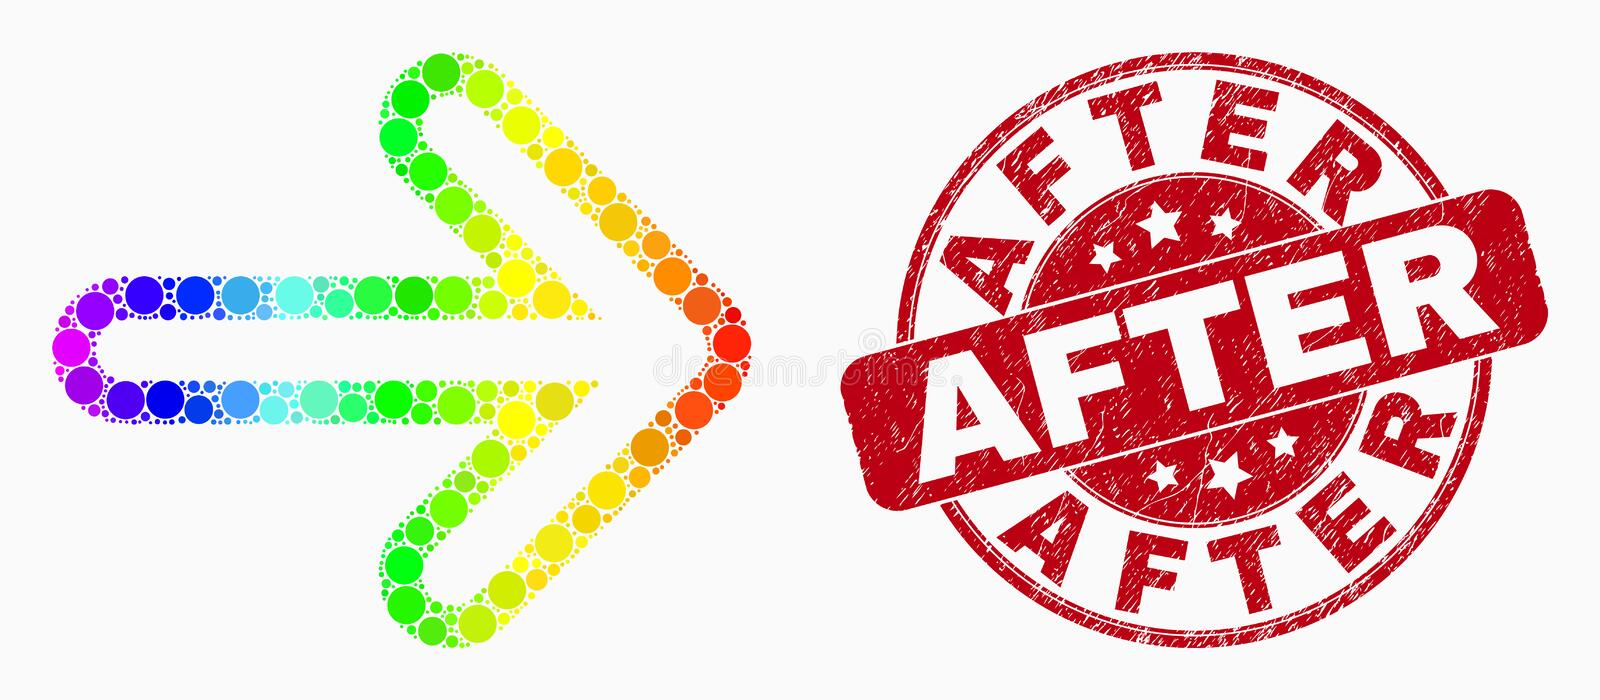 Vector Rainbow Colored Pixel Right Direction Arrow Icon and Scratched After Watermark royalty free illustration